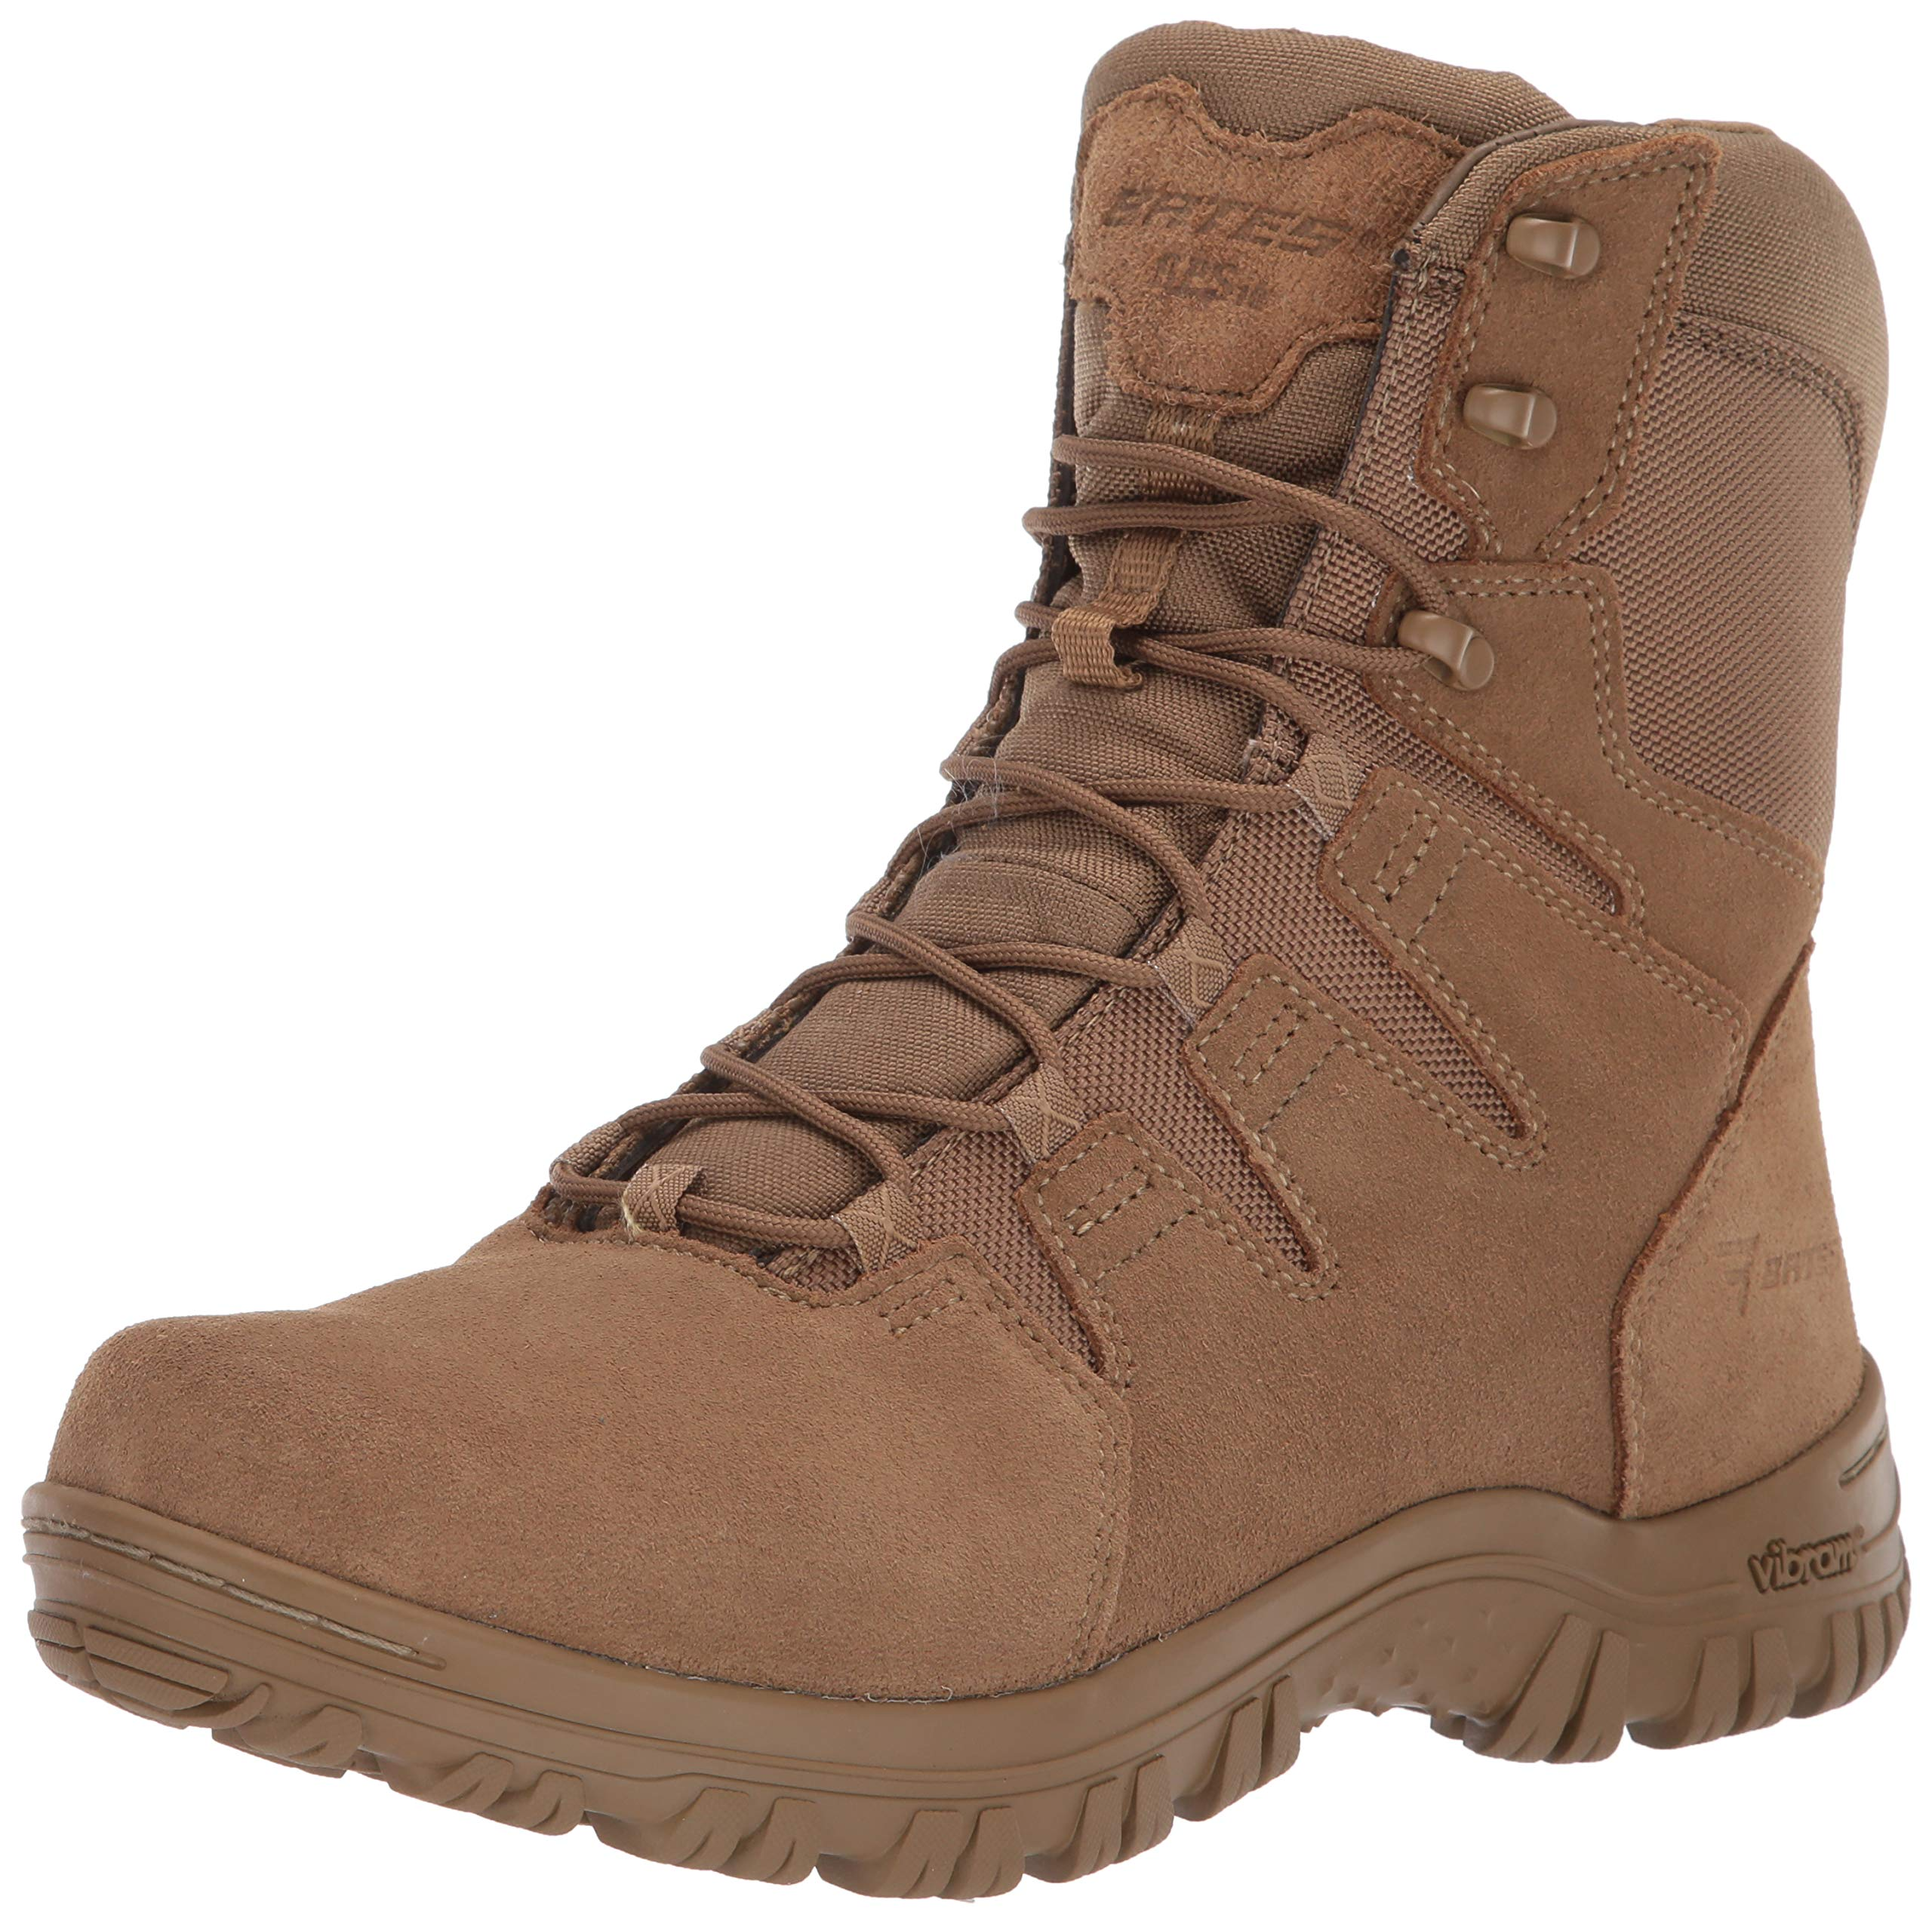 Bates Men's Maneuver Hot Weather Fire and Safety Boot, Coyote, 8 M US